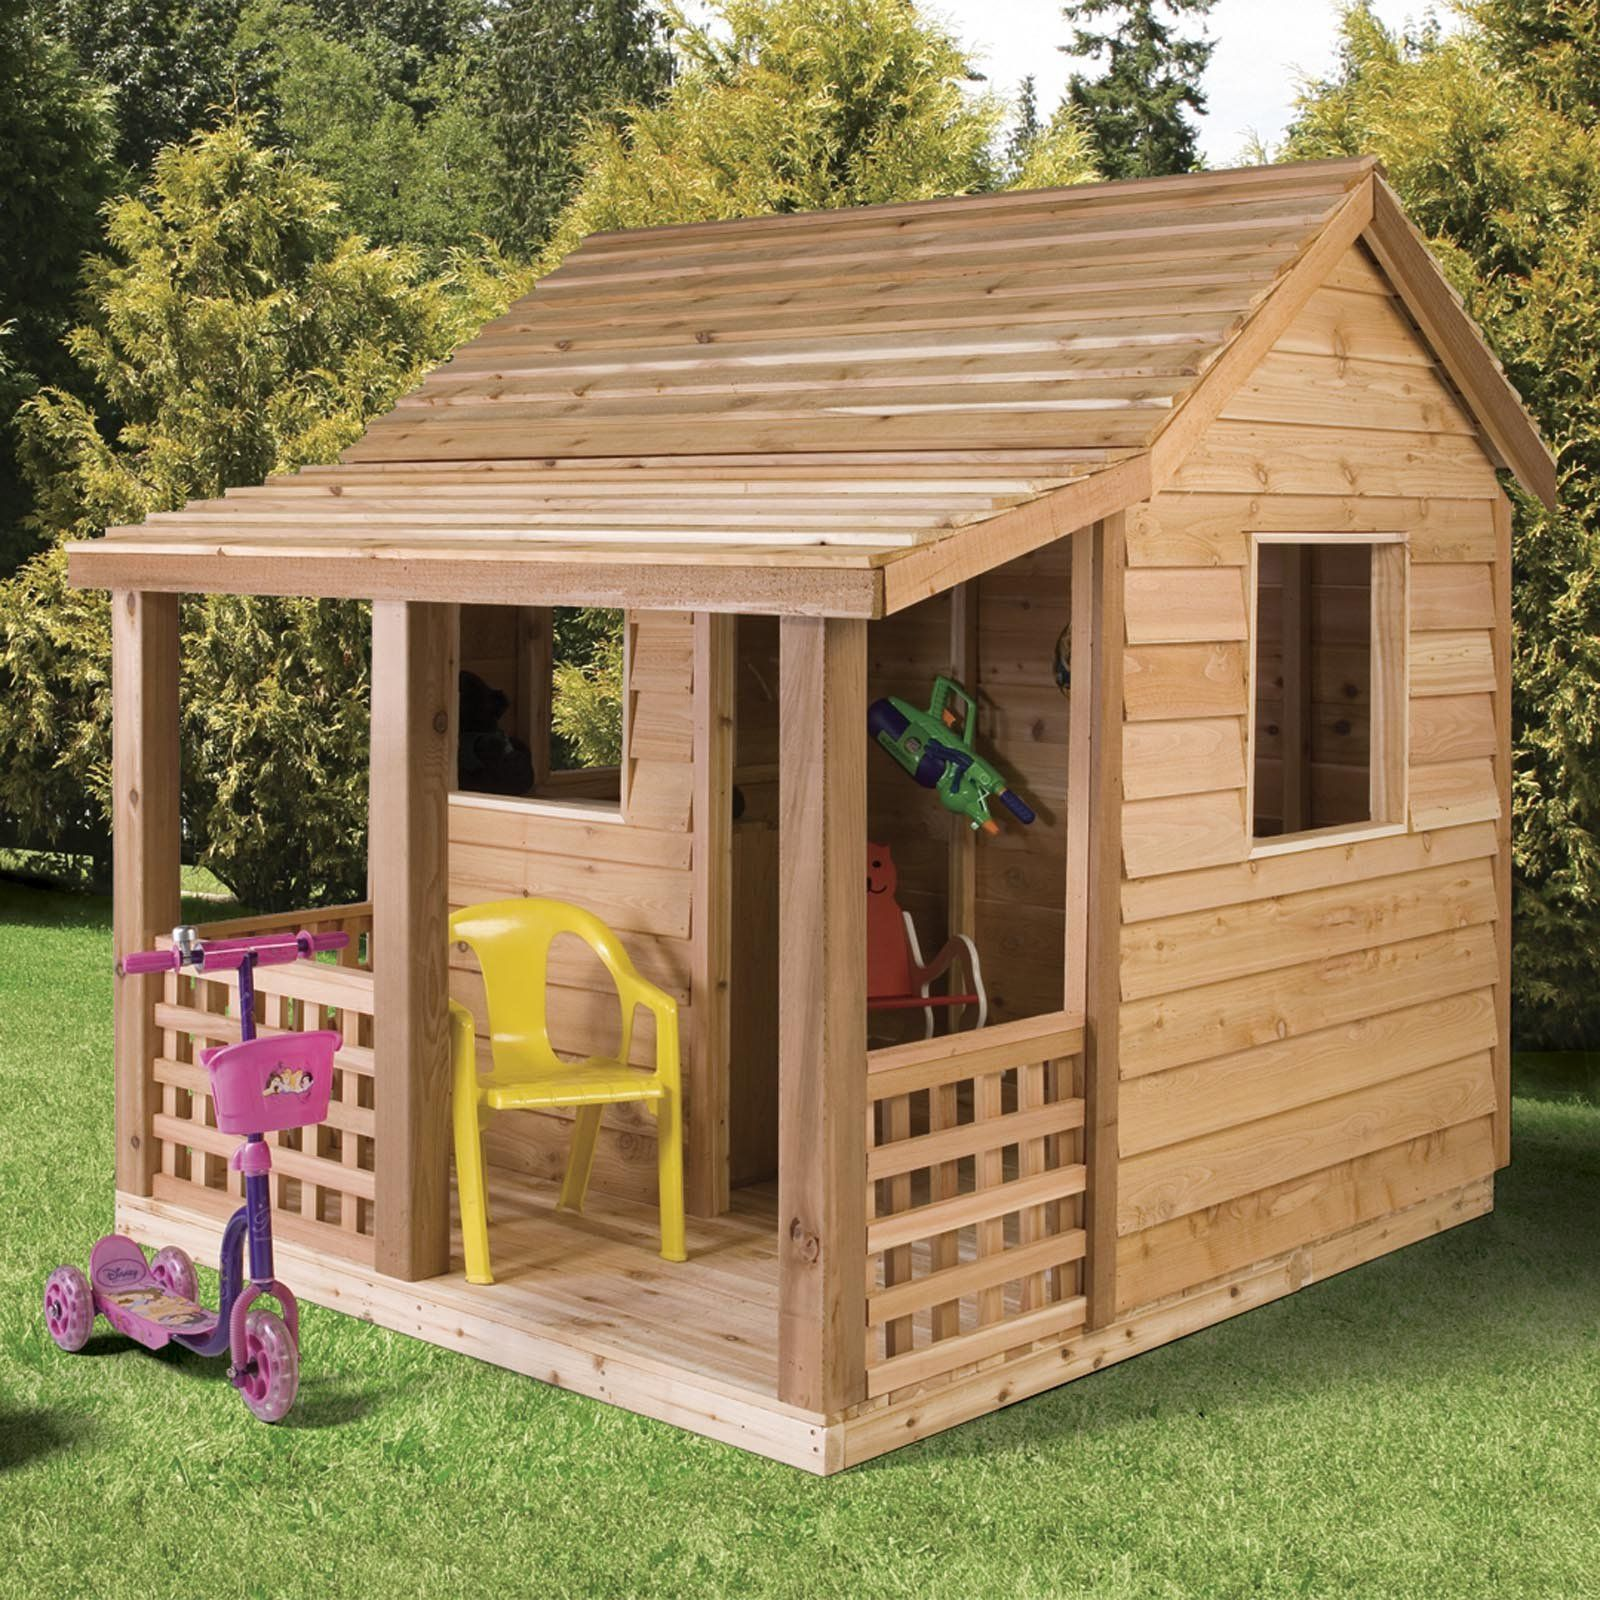 Cedar shed cabin cedar playhouse with classic slat style for Kids outdoor playhouse